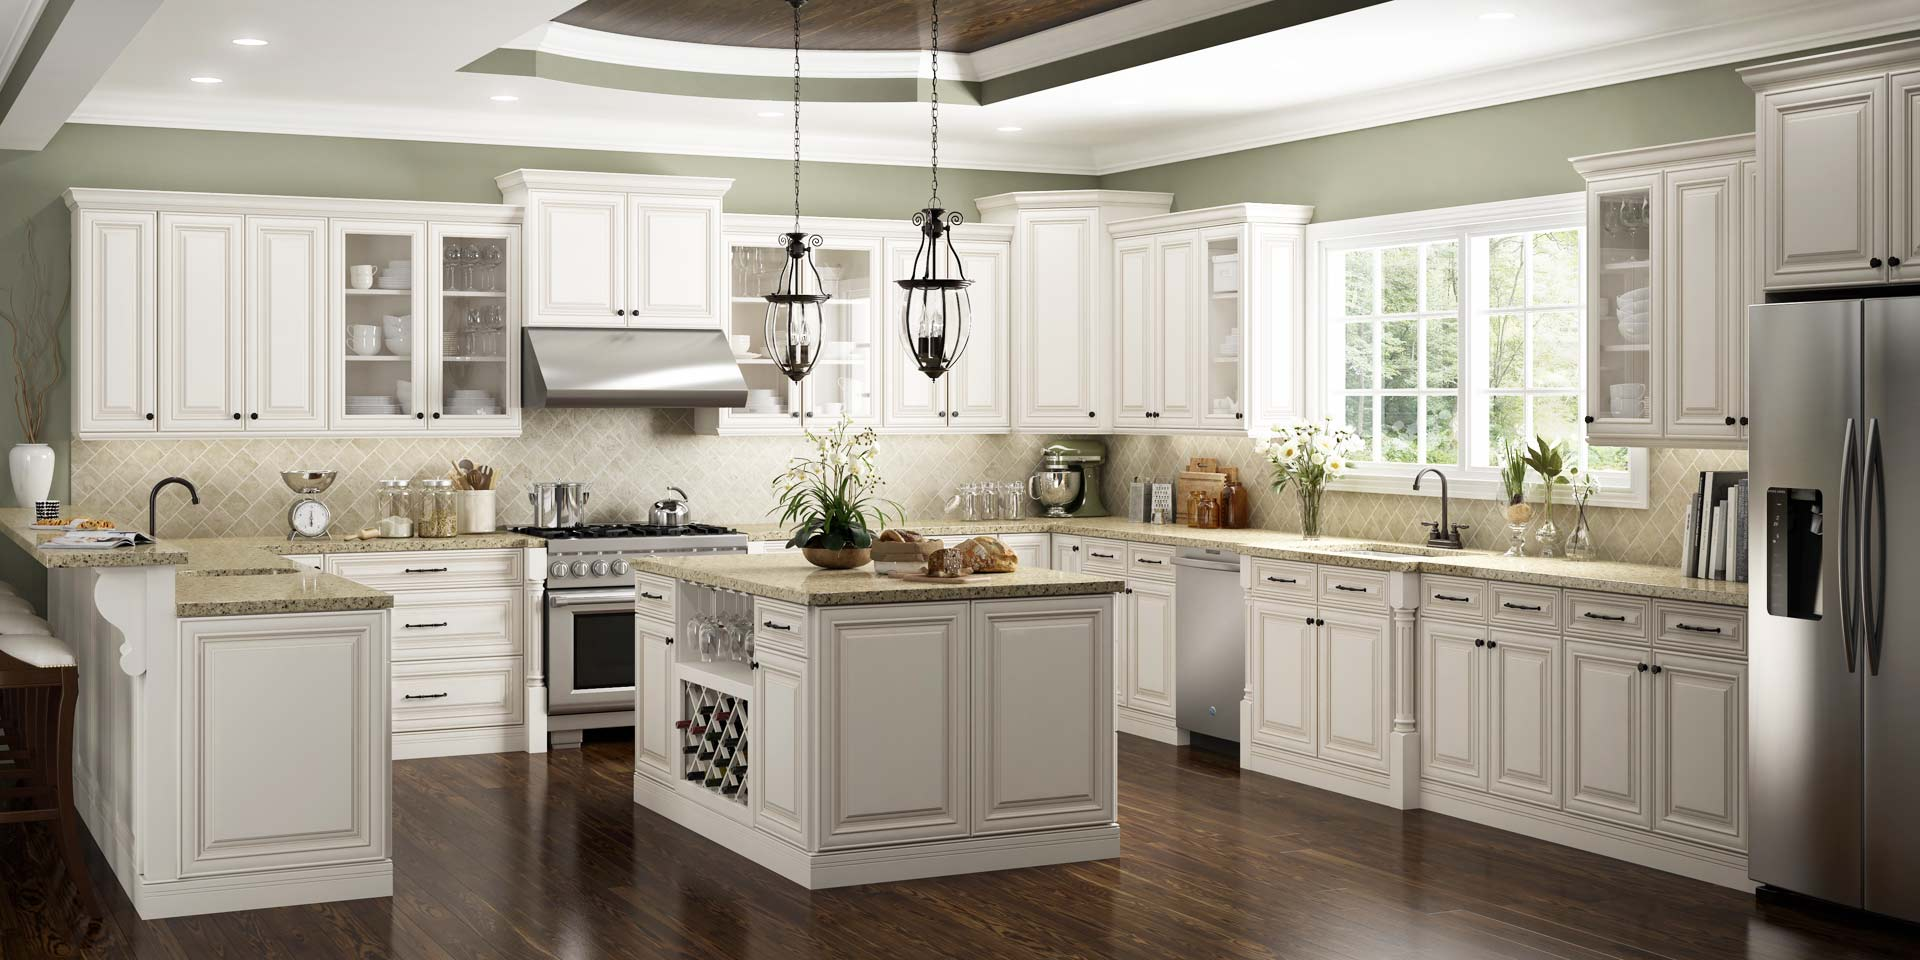 Kitchen design alabama search alabama kitchen designers for Search kitchen designs